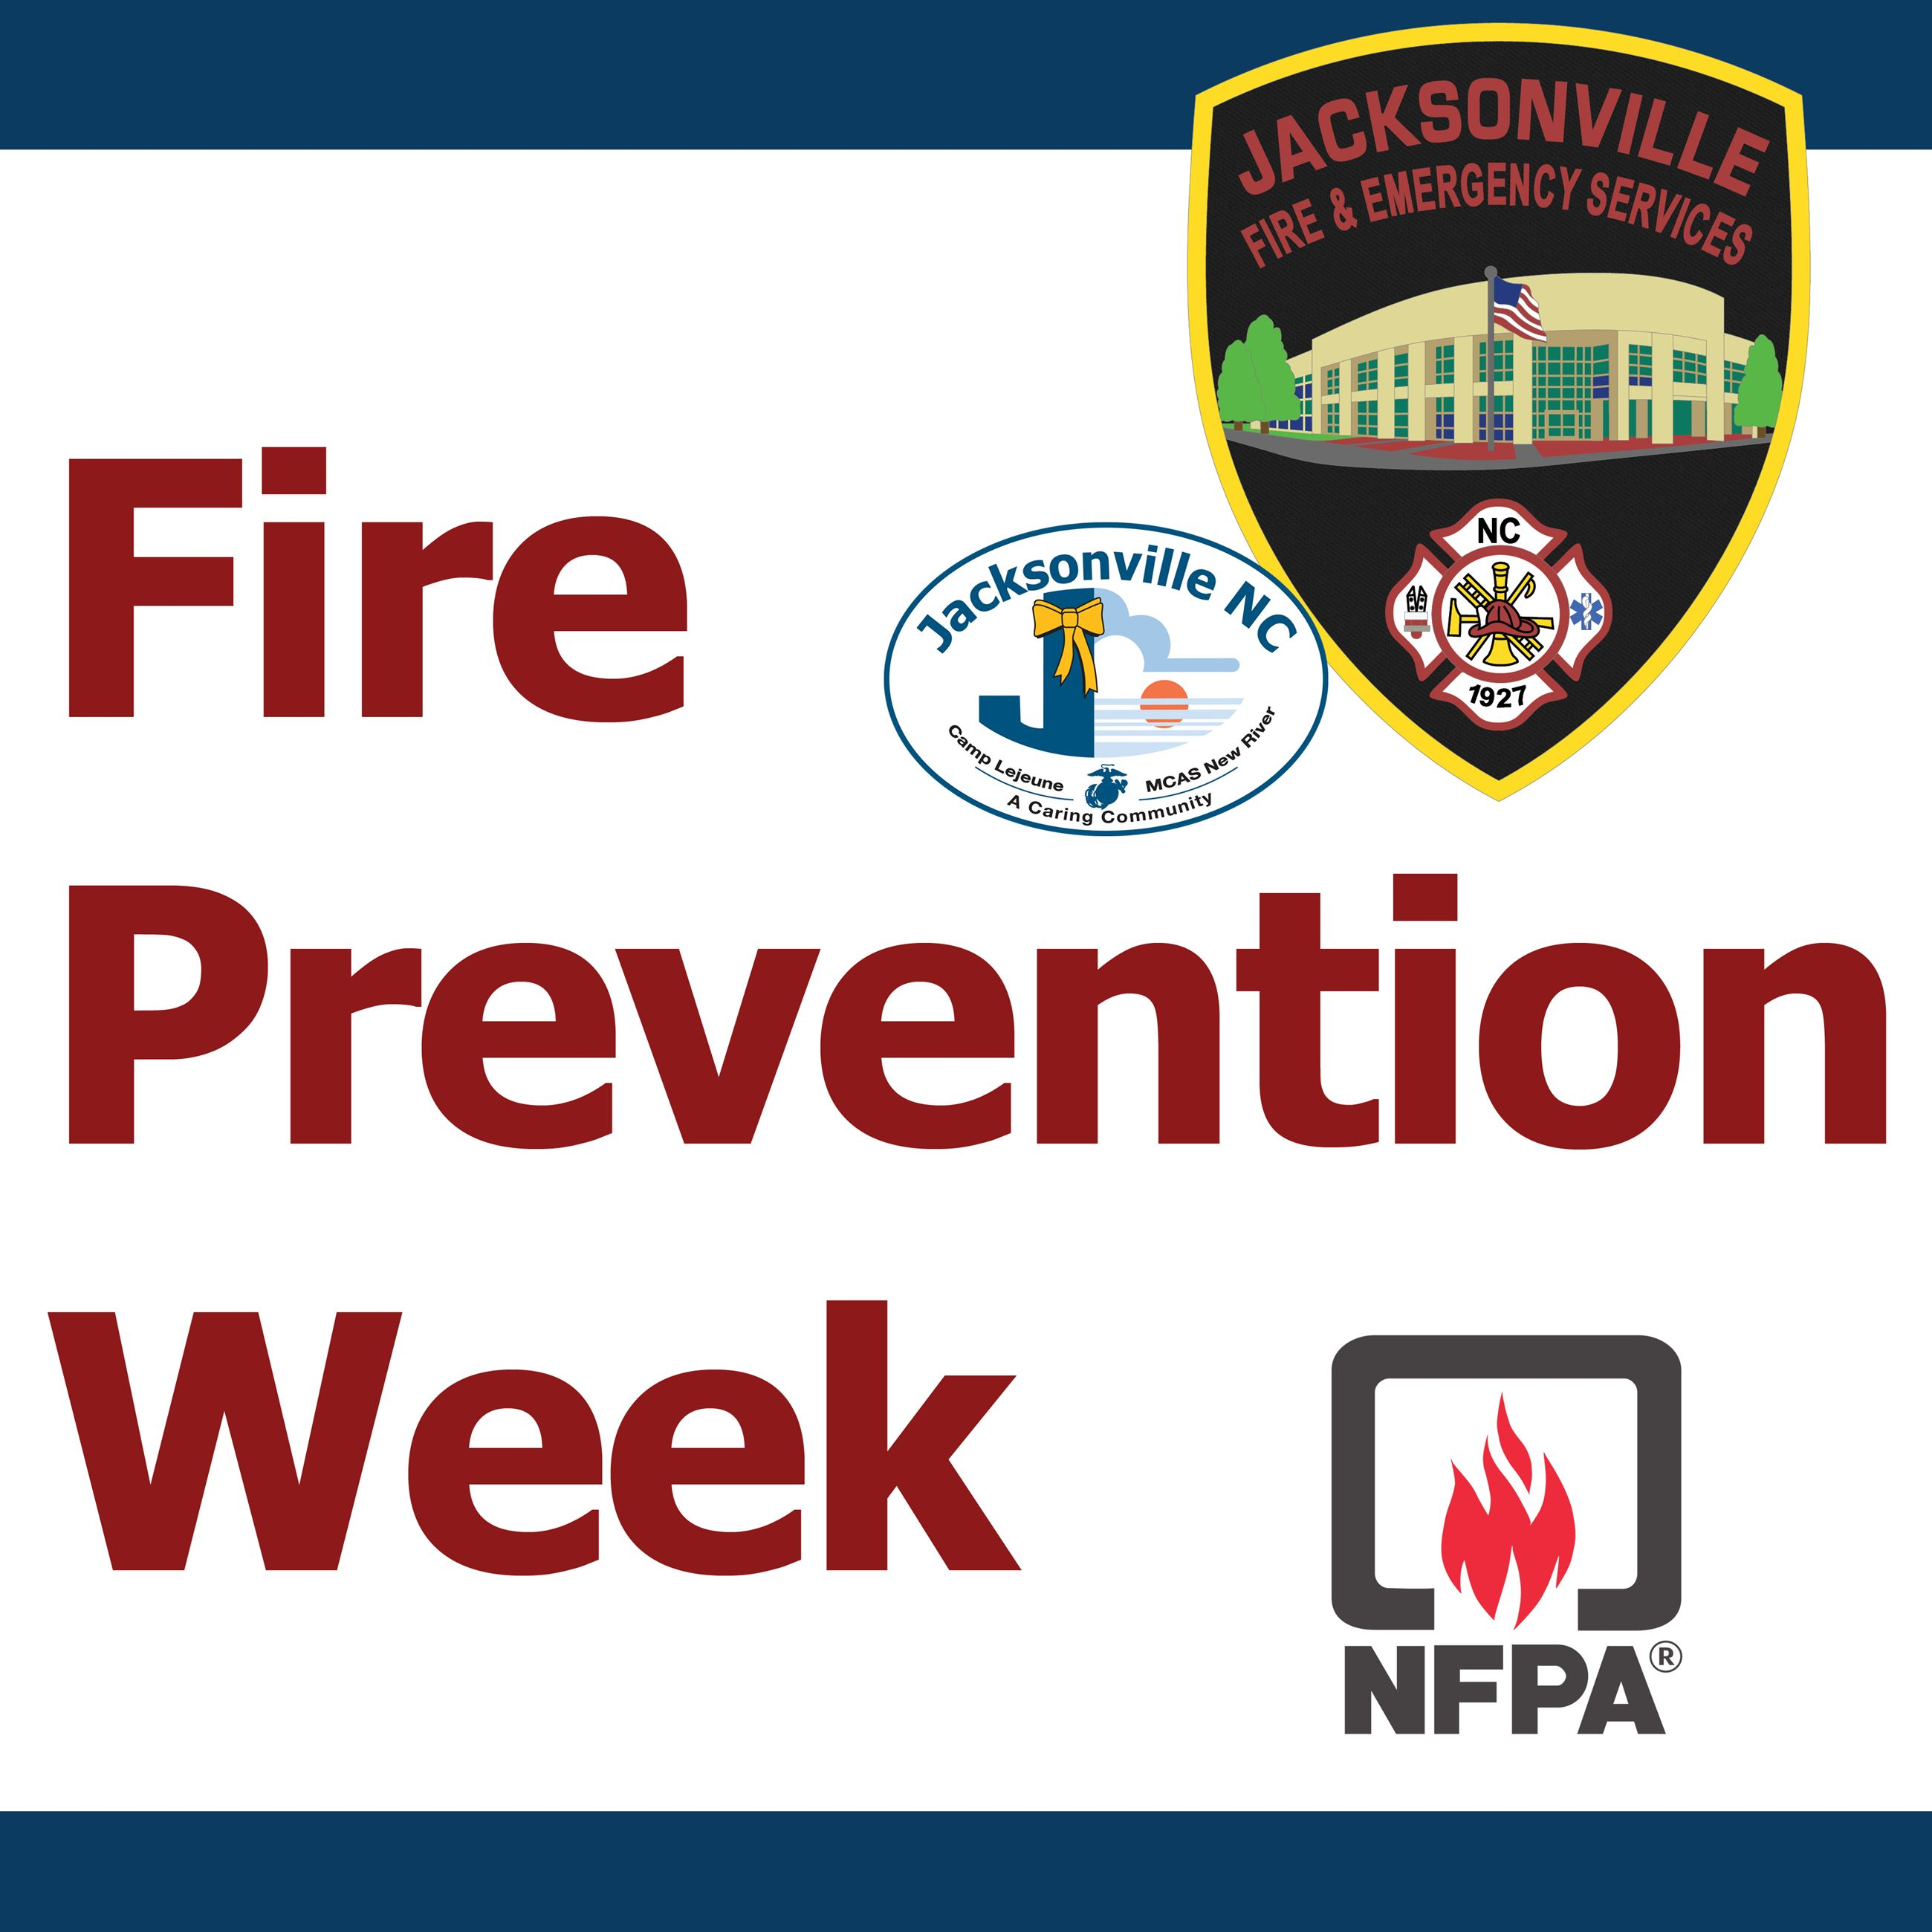 2020-FPW-FireWeek-graphic